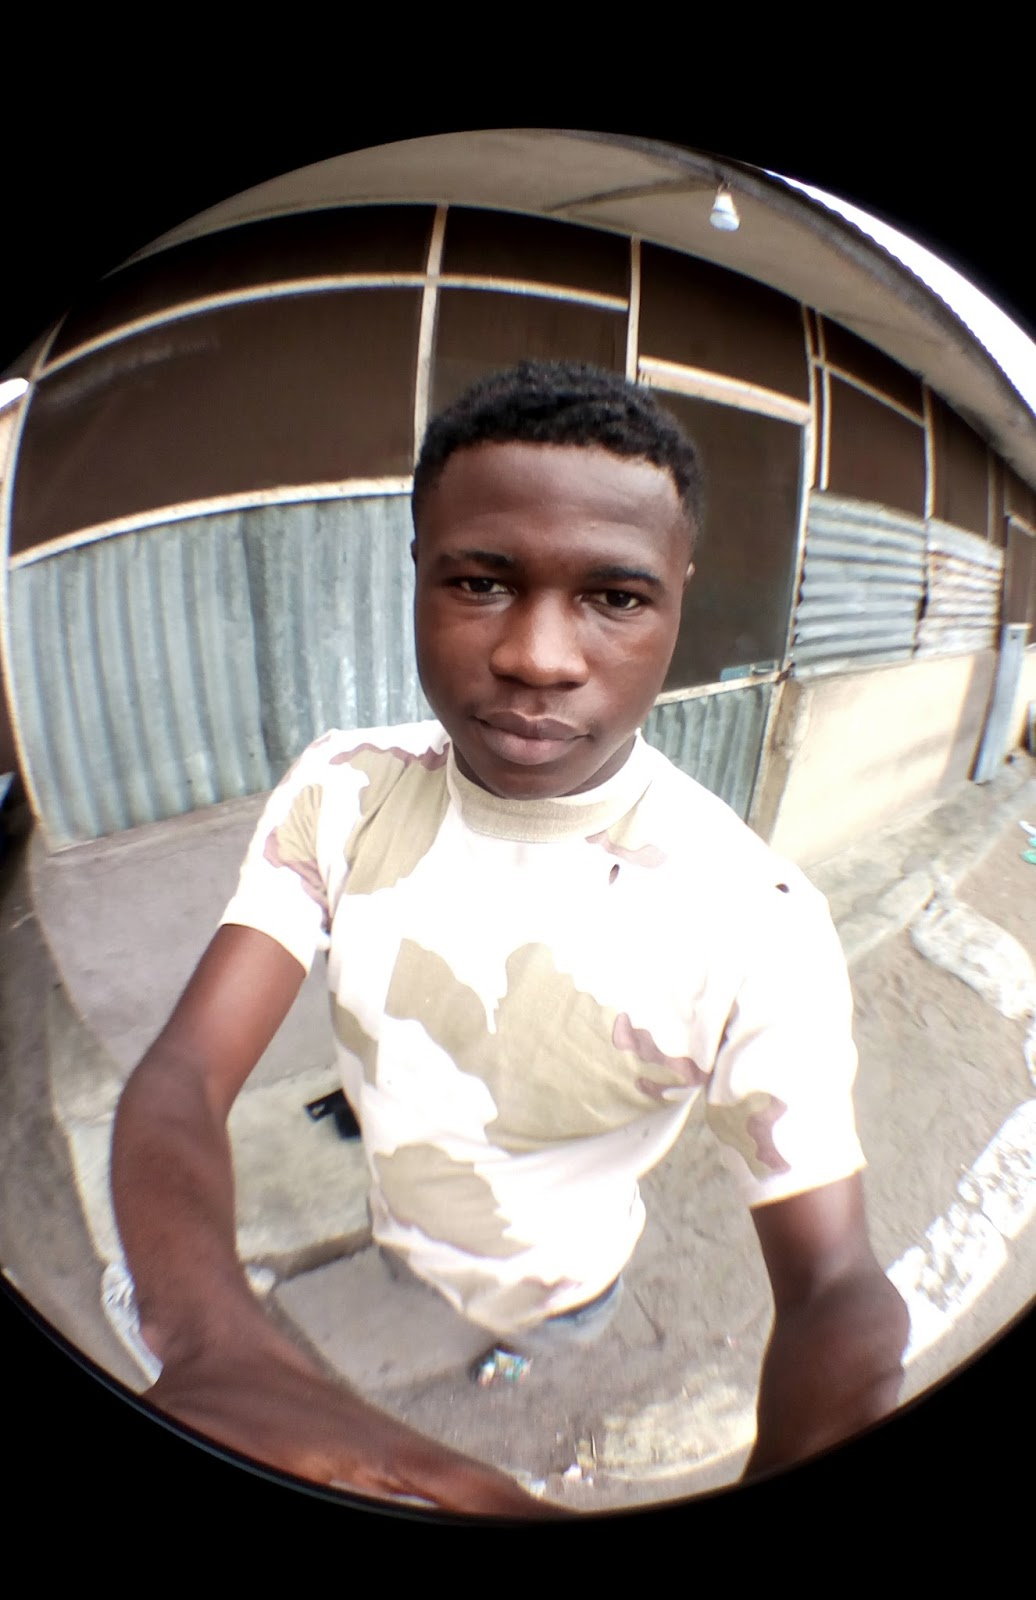 Picture Taken With Fish eye lens